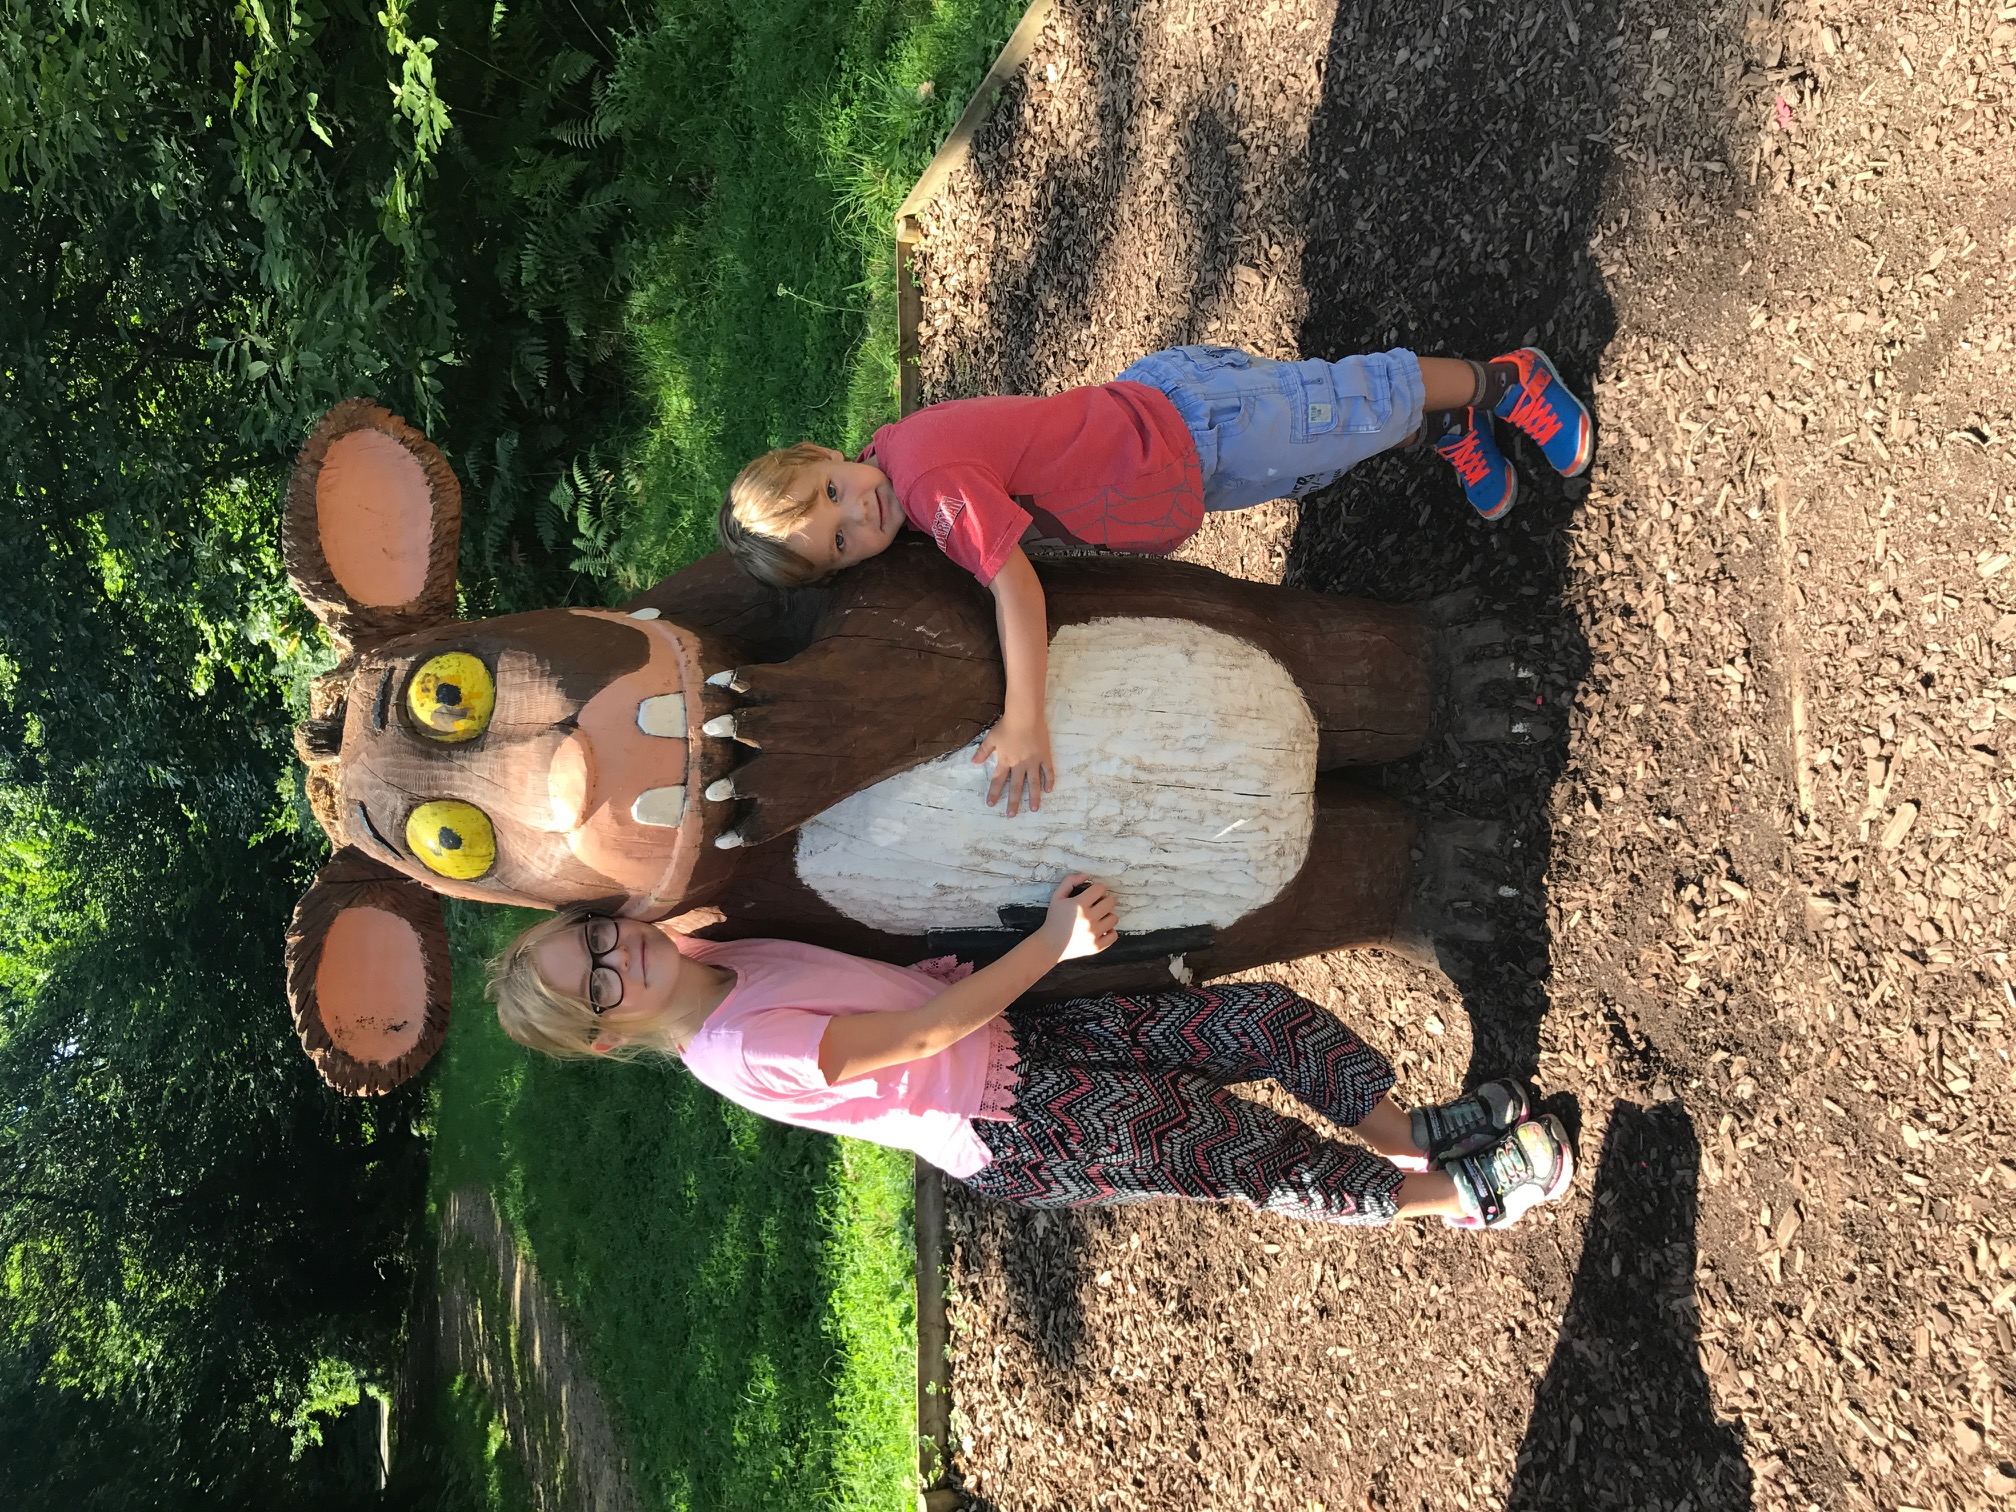 So i'm sure you've guessed by now, we went on one of the forestry commission's many gruffalo's child trails. Review Of Alice Holt Forest Woodland Park In North Hampshire By Nadine Storer 194 Families Online